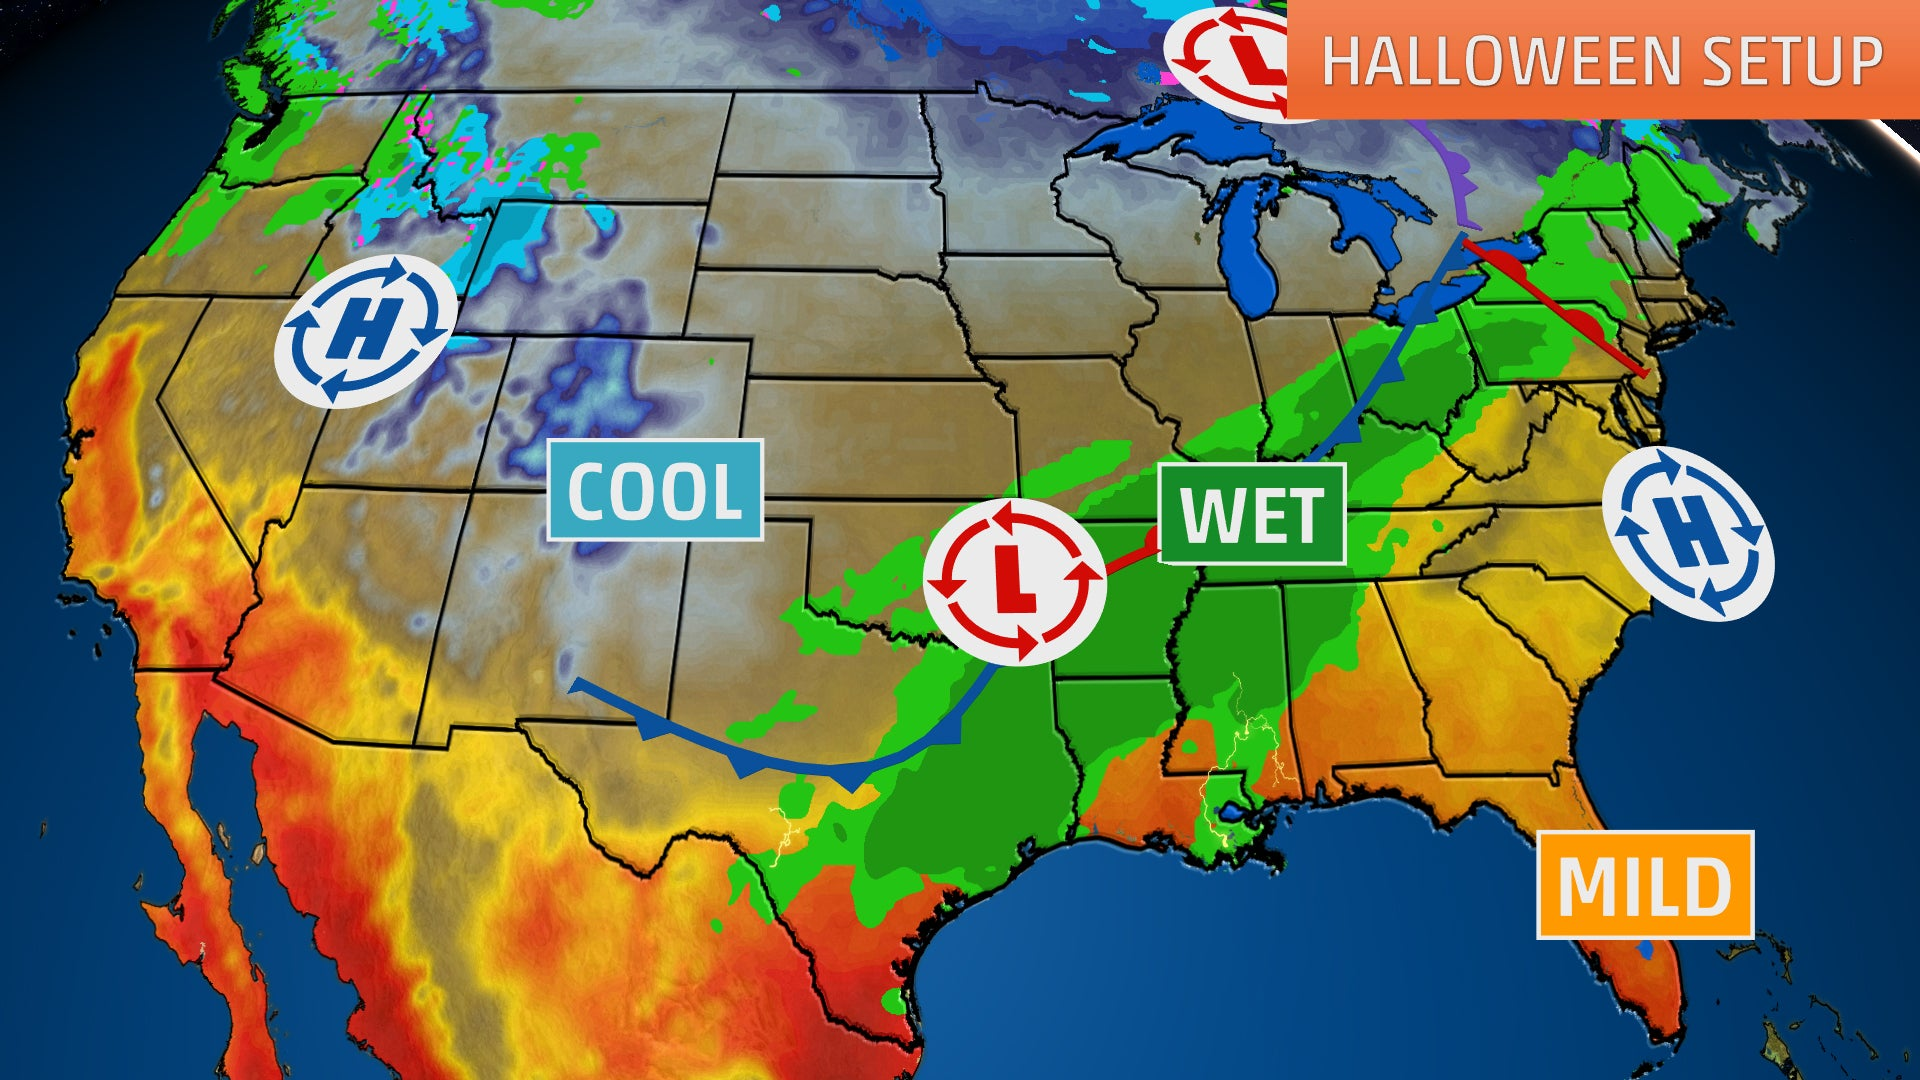 halloween weather forecast  wet conditions from texas to